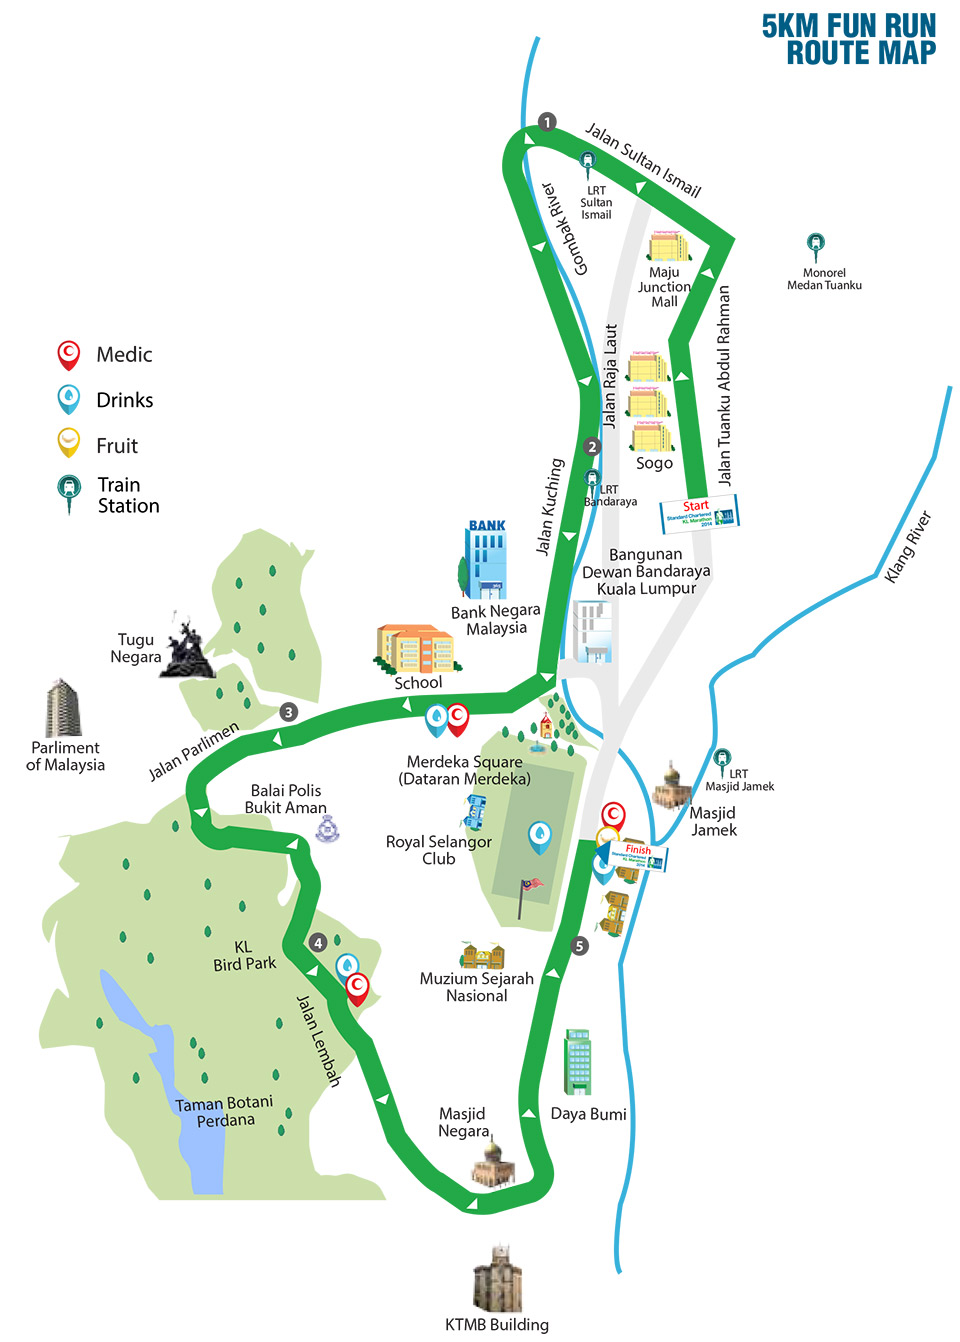 Standard Chartered Marathon KL 2014: 5km Route Map